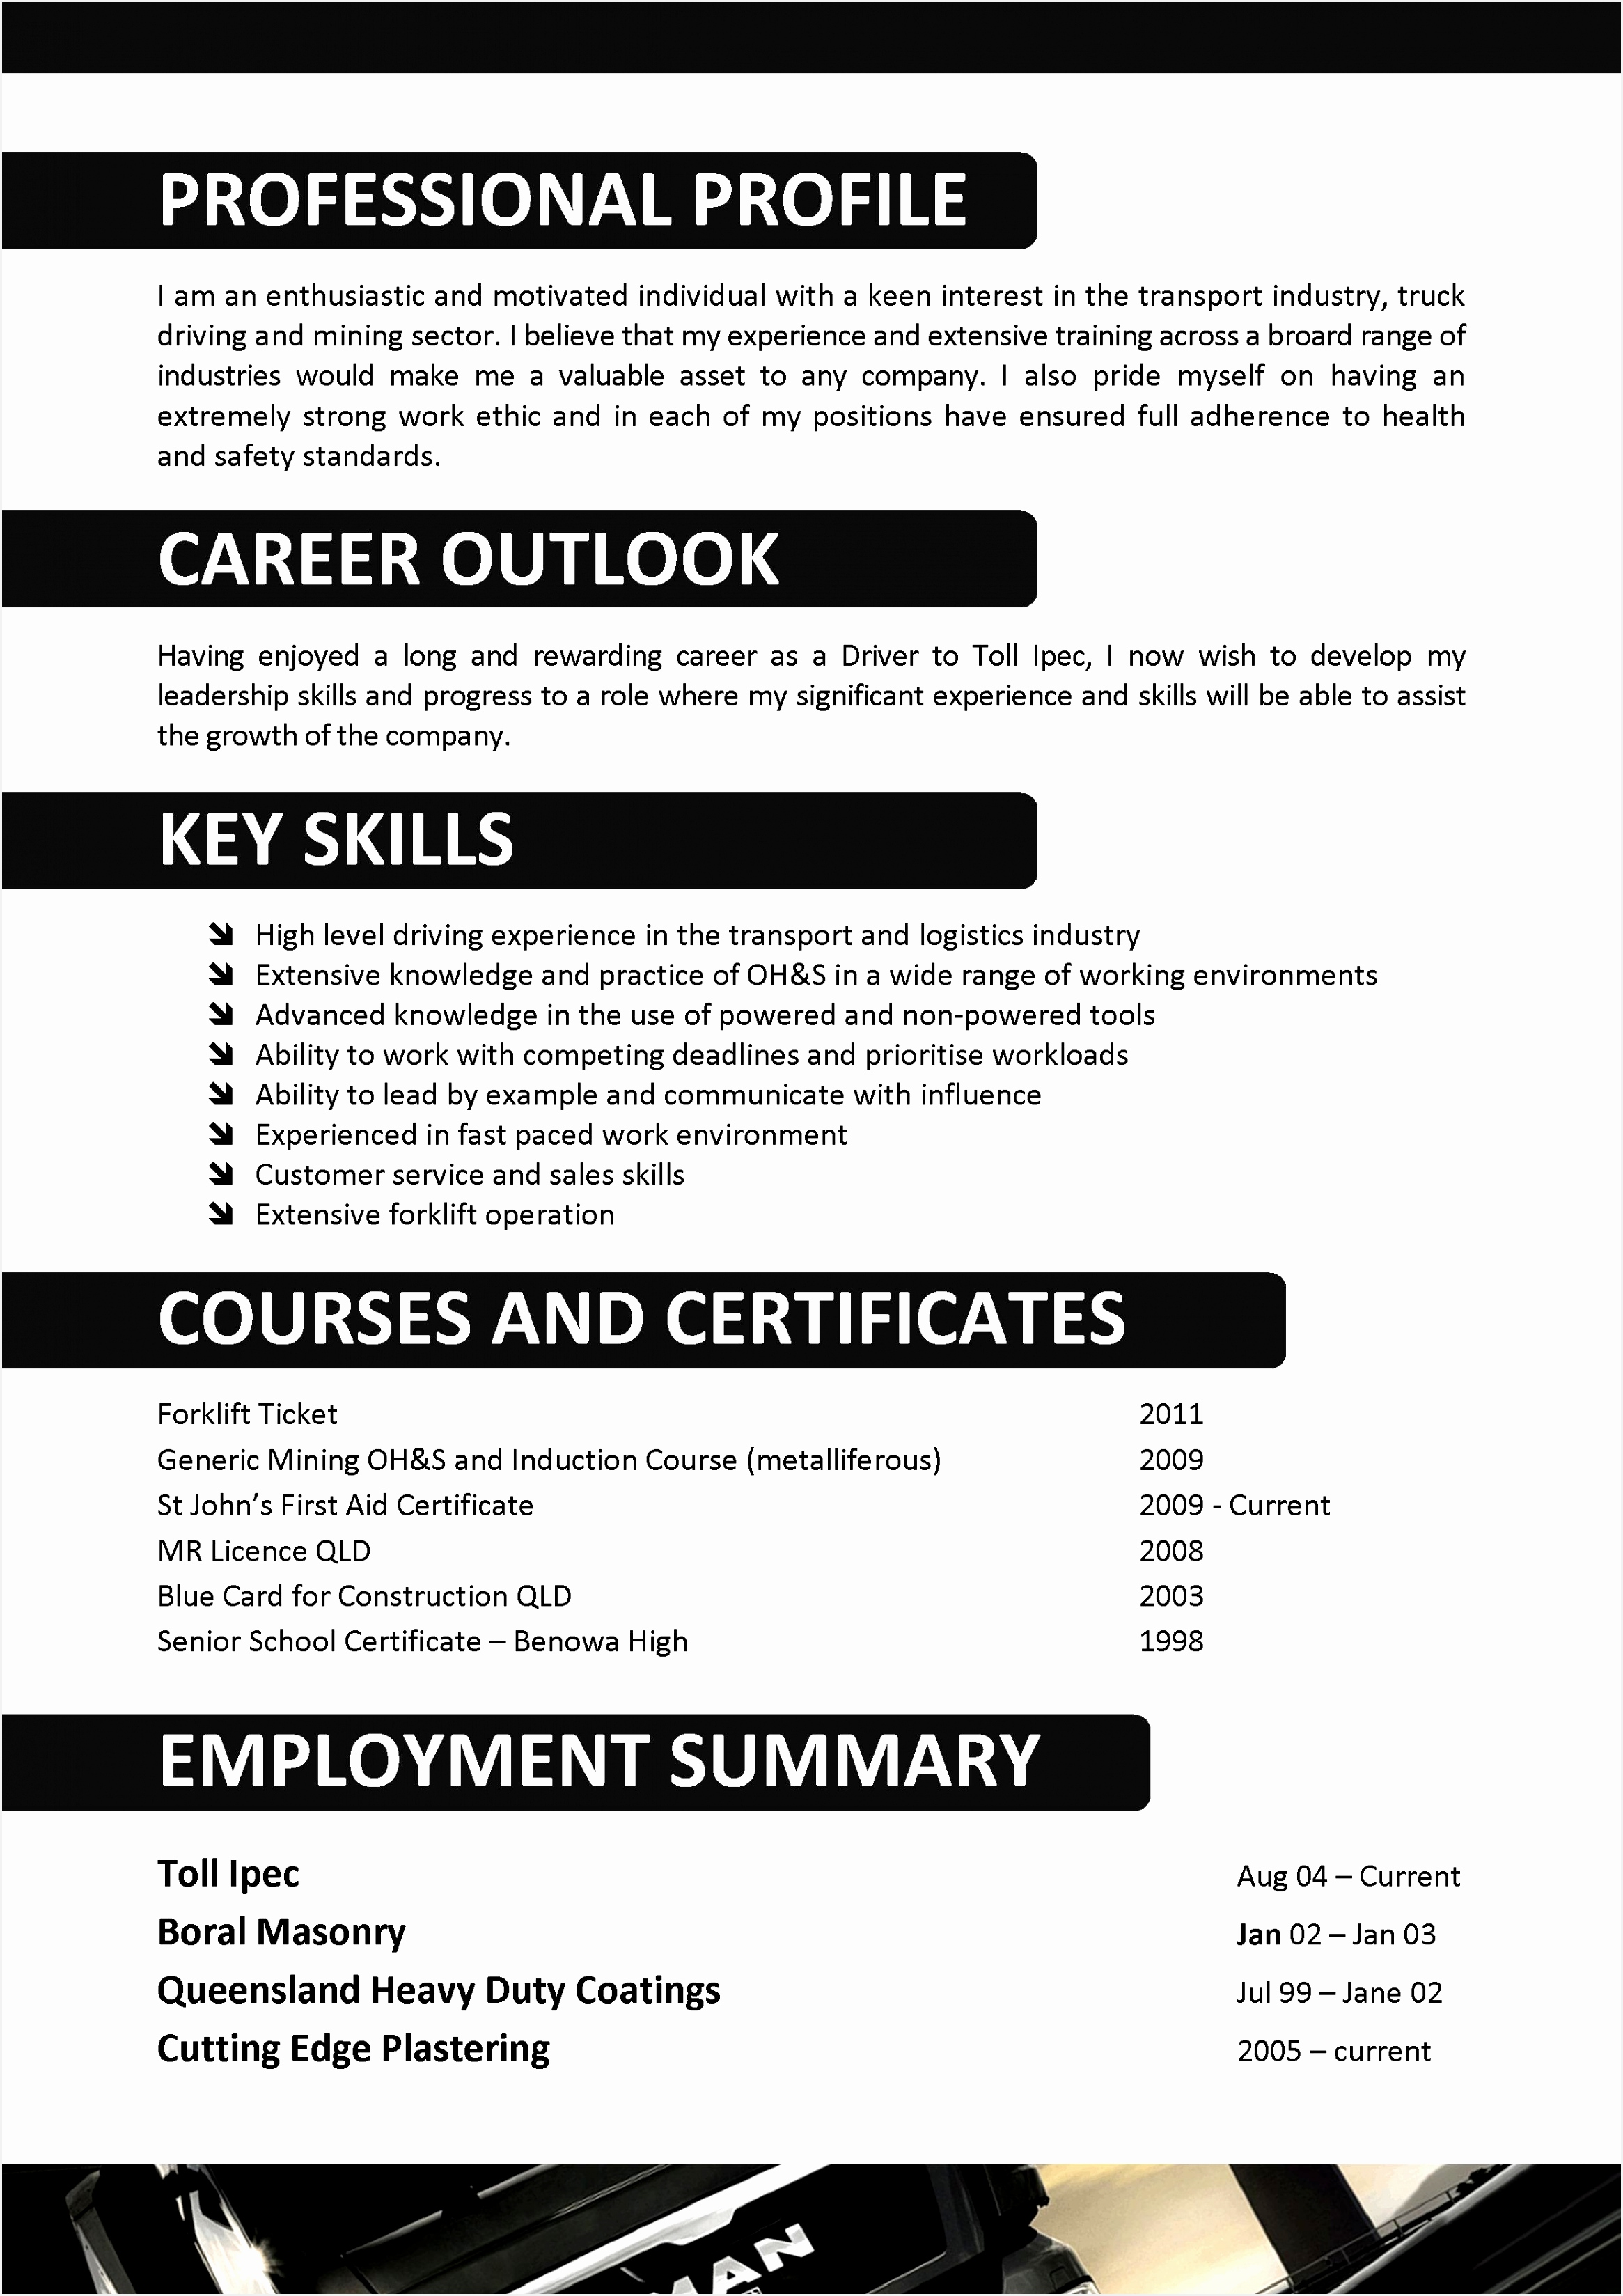 Construction Job Resume Samples Examples New Example Customer Service Resume Best Resume Examples 0d Skills 32972331kRlqu